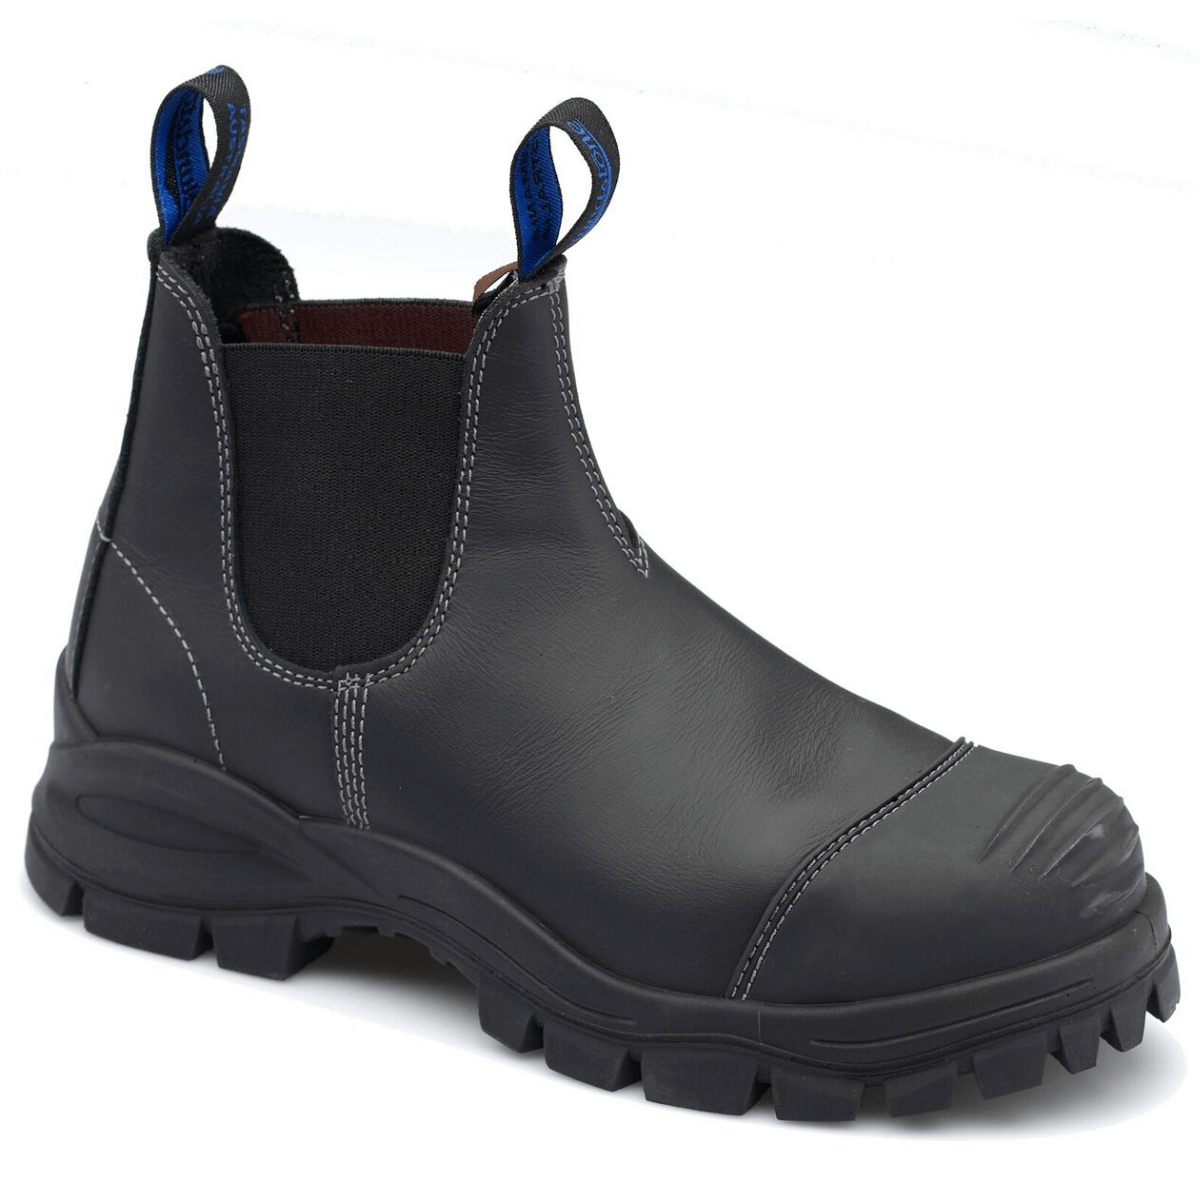 65757f33d83 Blundstone 990 Elastic Sided Safety Boot